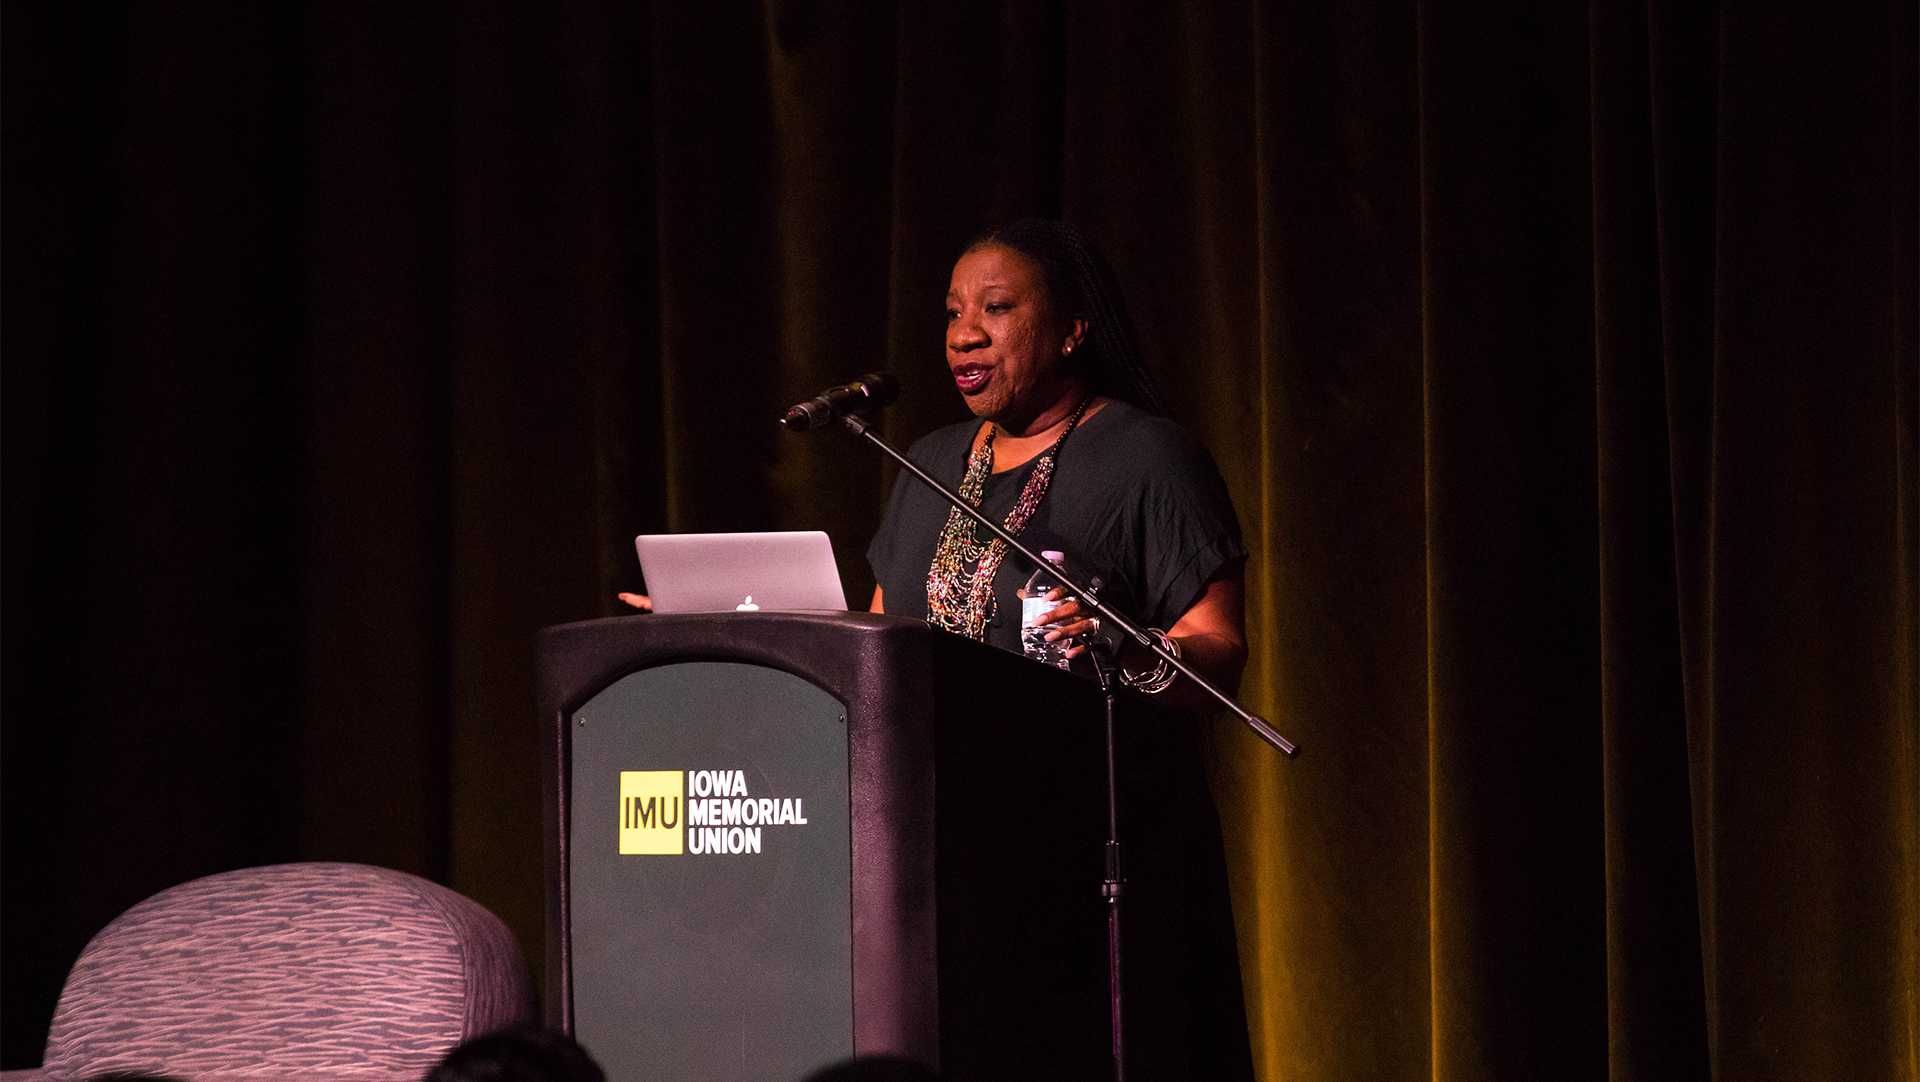 Tarana Burke, the founder of the #MeToo movement, speaks in the IMU on Tuesday. During the lecture, she spoke about her experiences regarding sexual assault and how she has advocated to stop abuse and help victims. (Megan Nagorzanski/Daily Iowan)